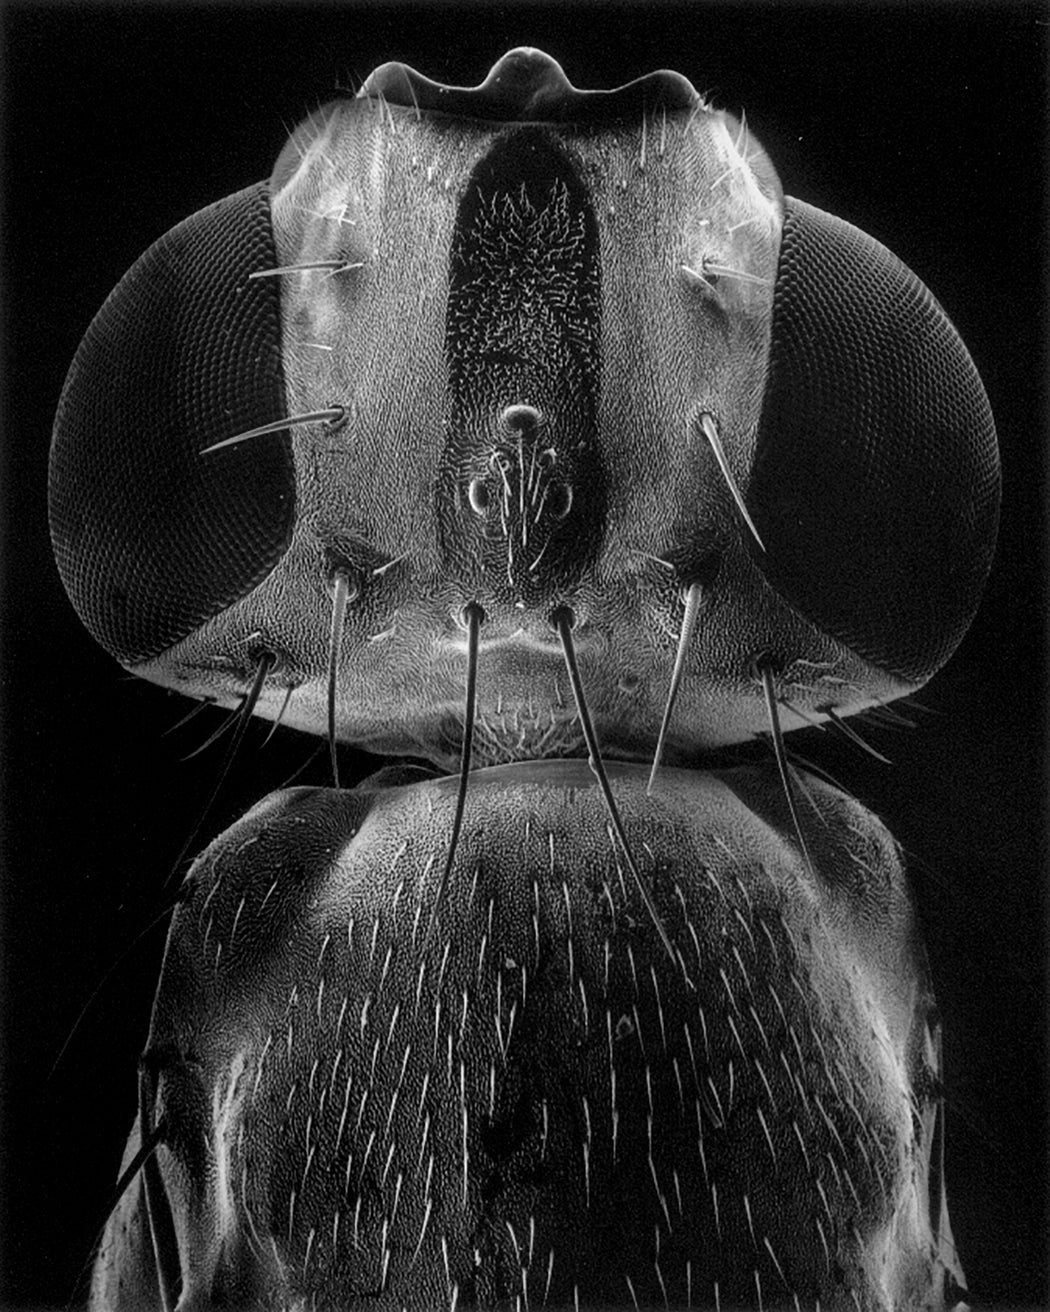 Head of a fly, 50x